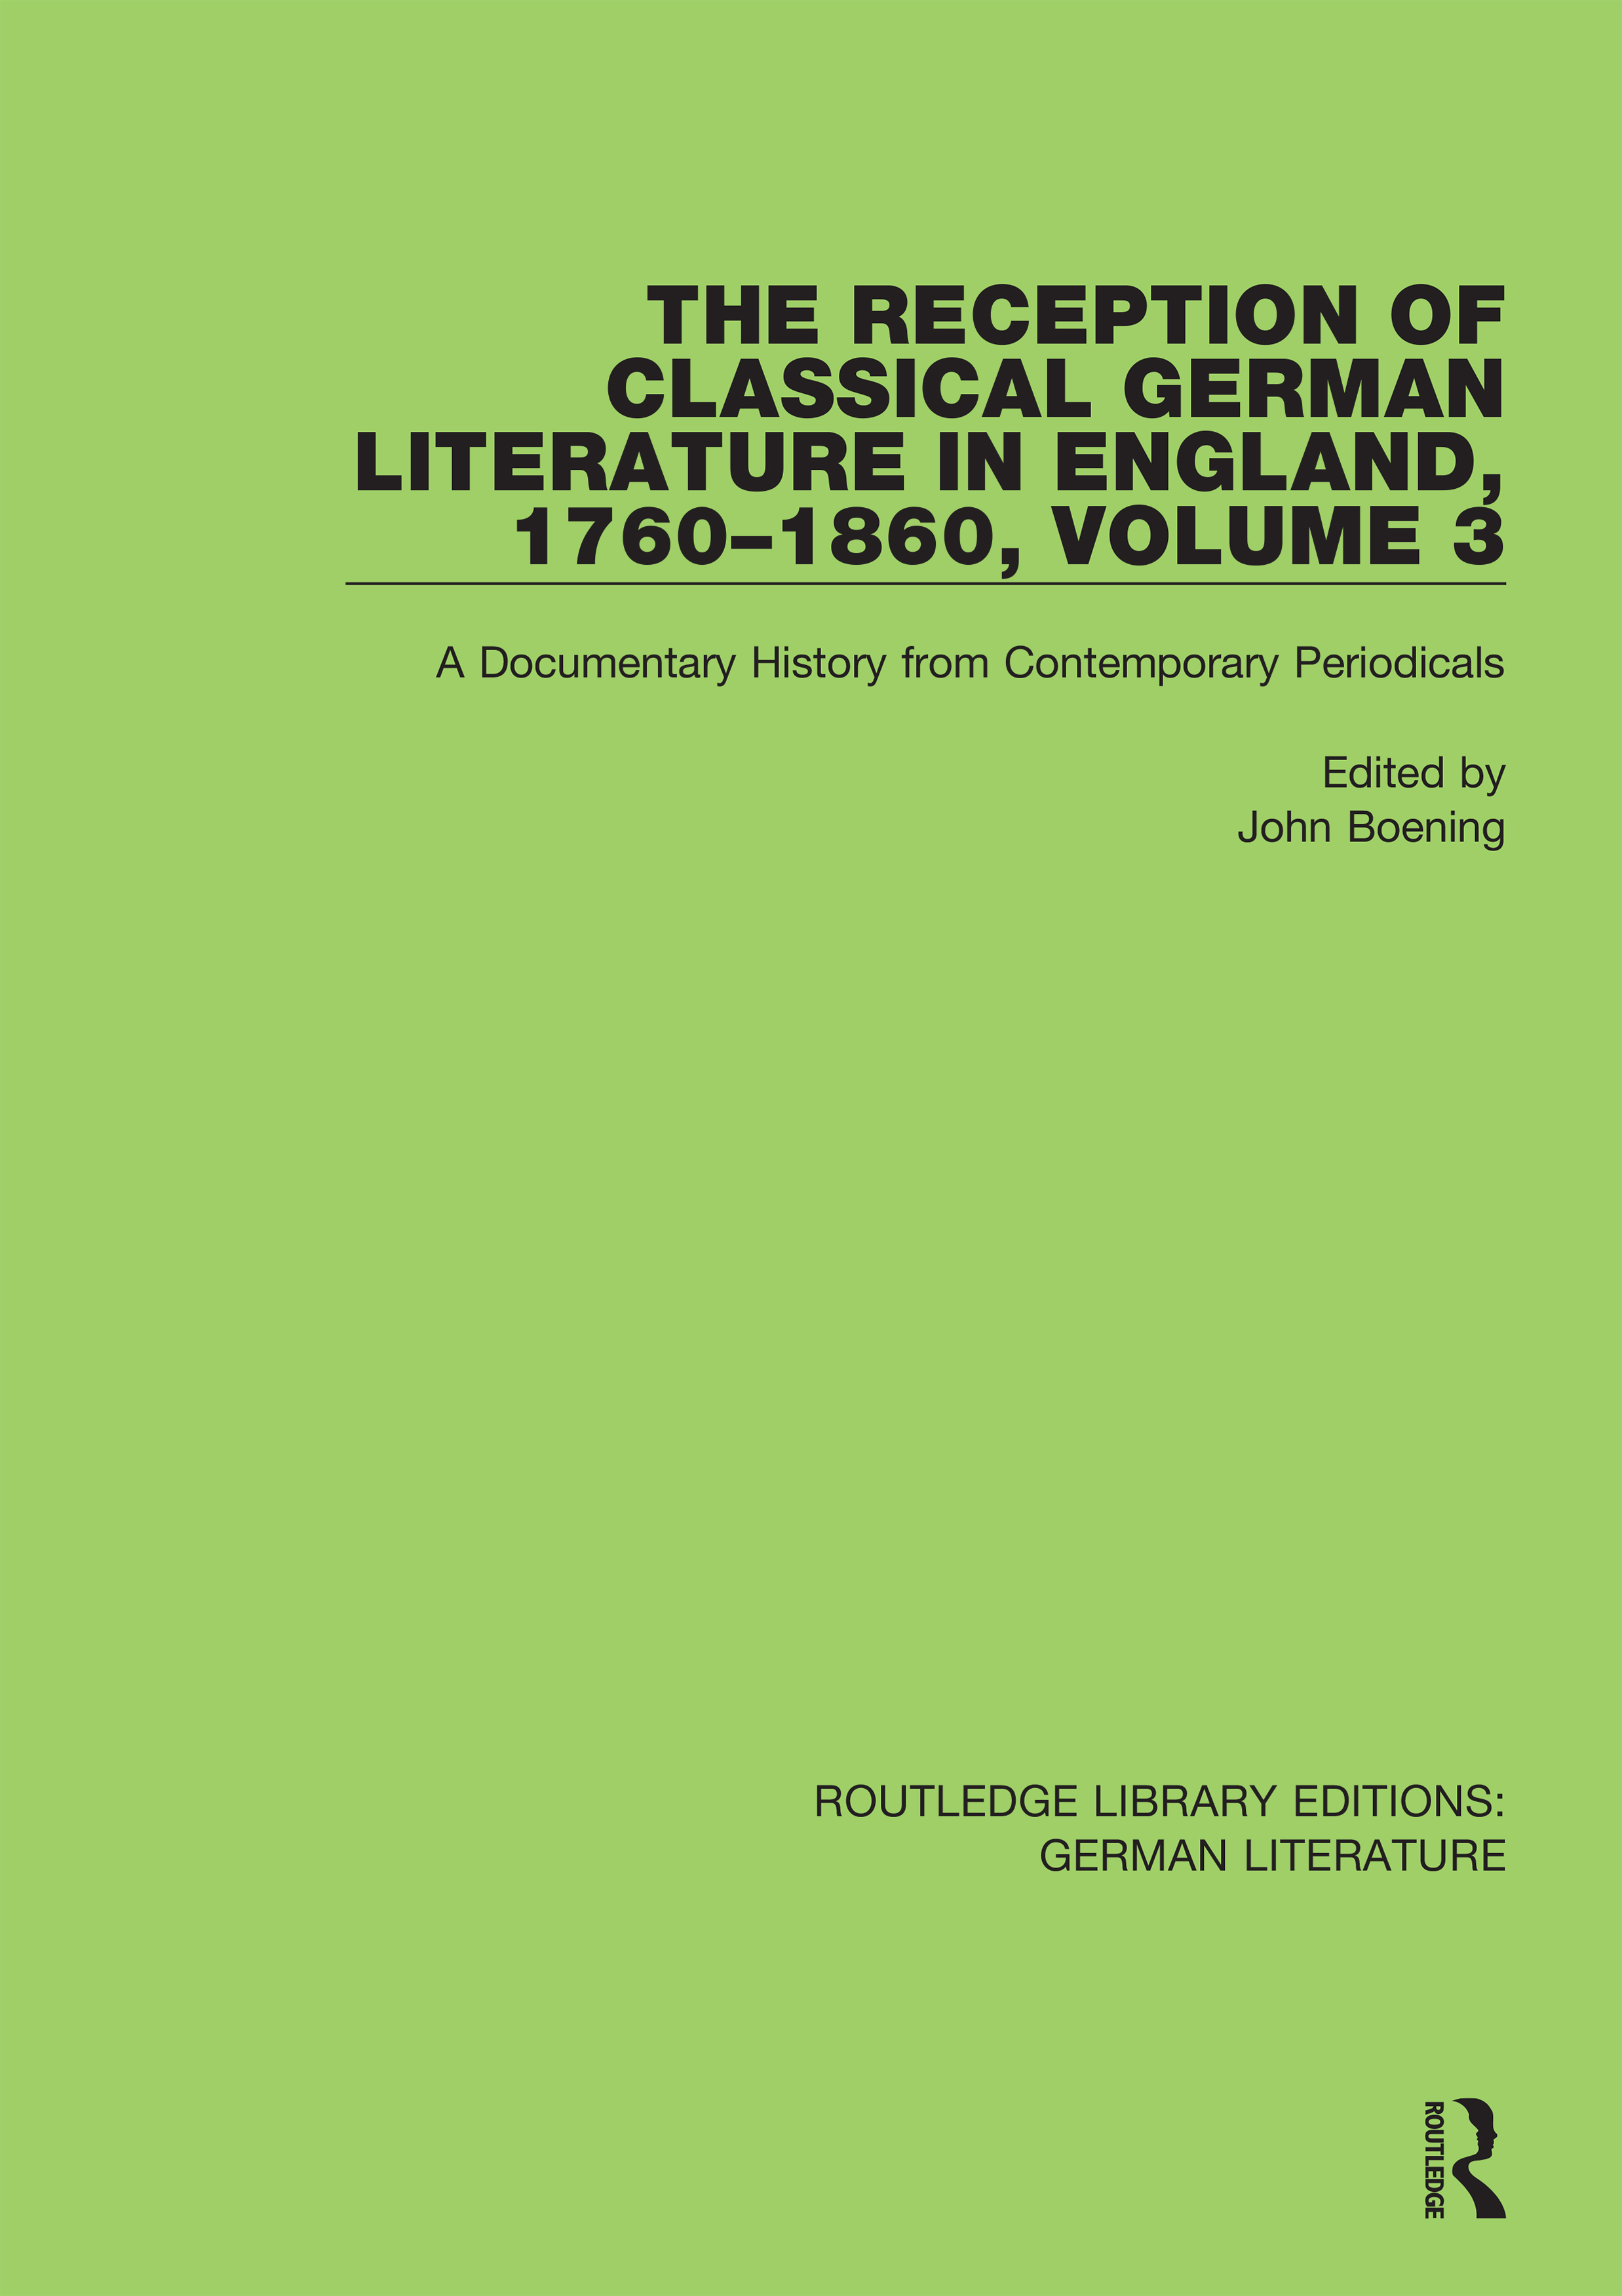 The Reception of Classical German Literature in England, 1760-1860, Volume 7: A Documentary History from Contemporary Periodicals book cover